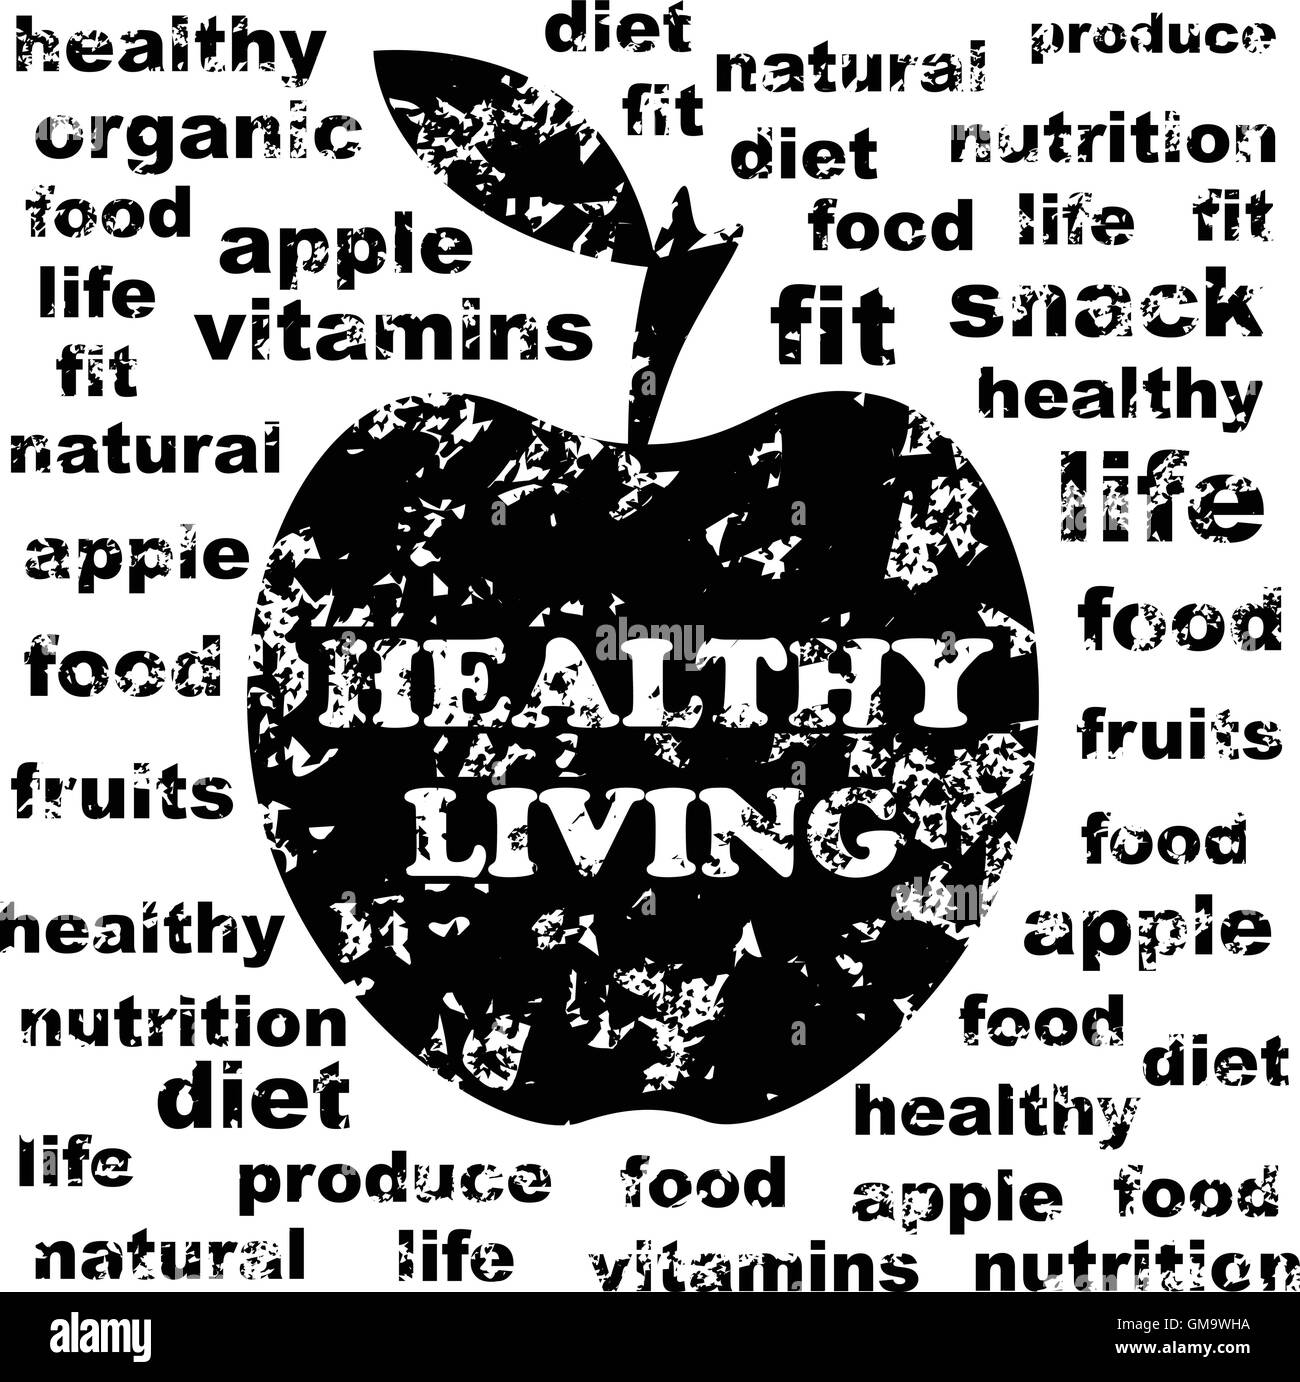 Healthy living - Stock Image